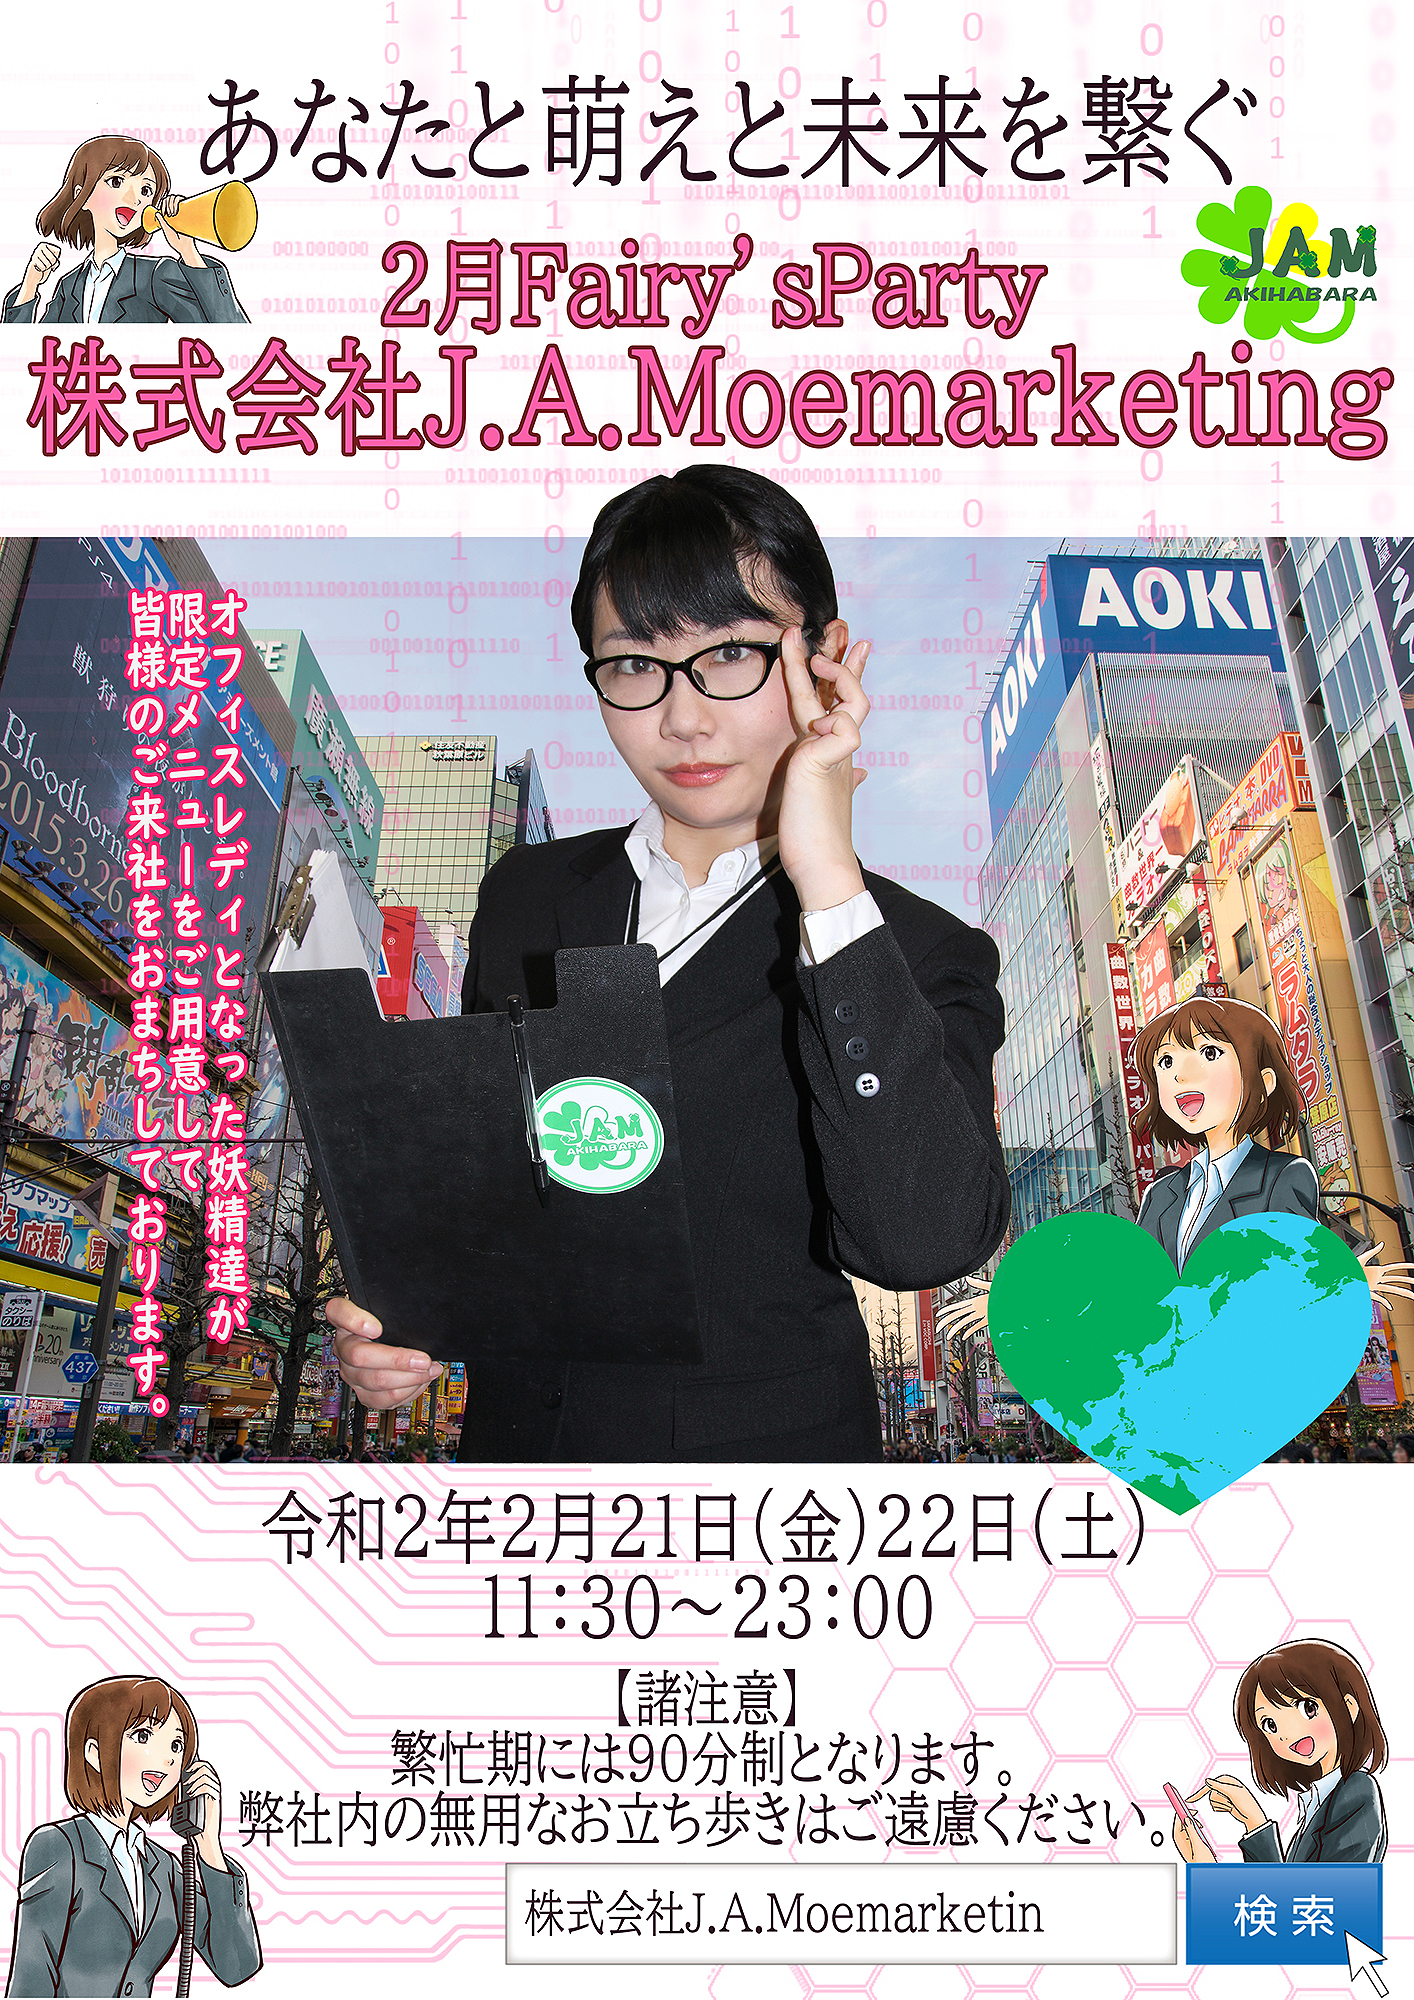 株式会社J.A.Moemarketing